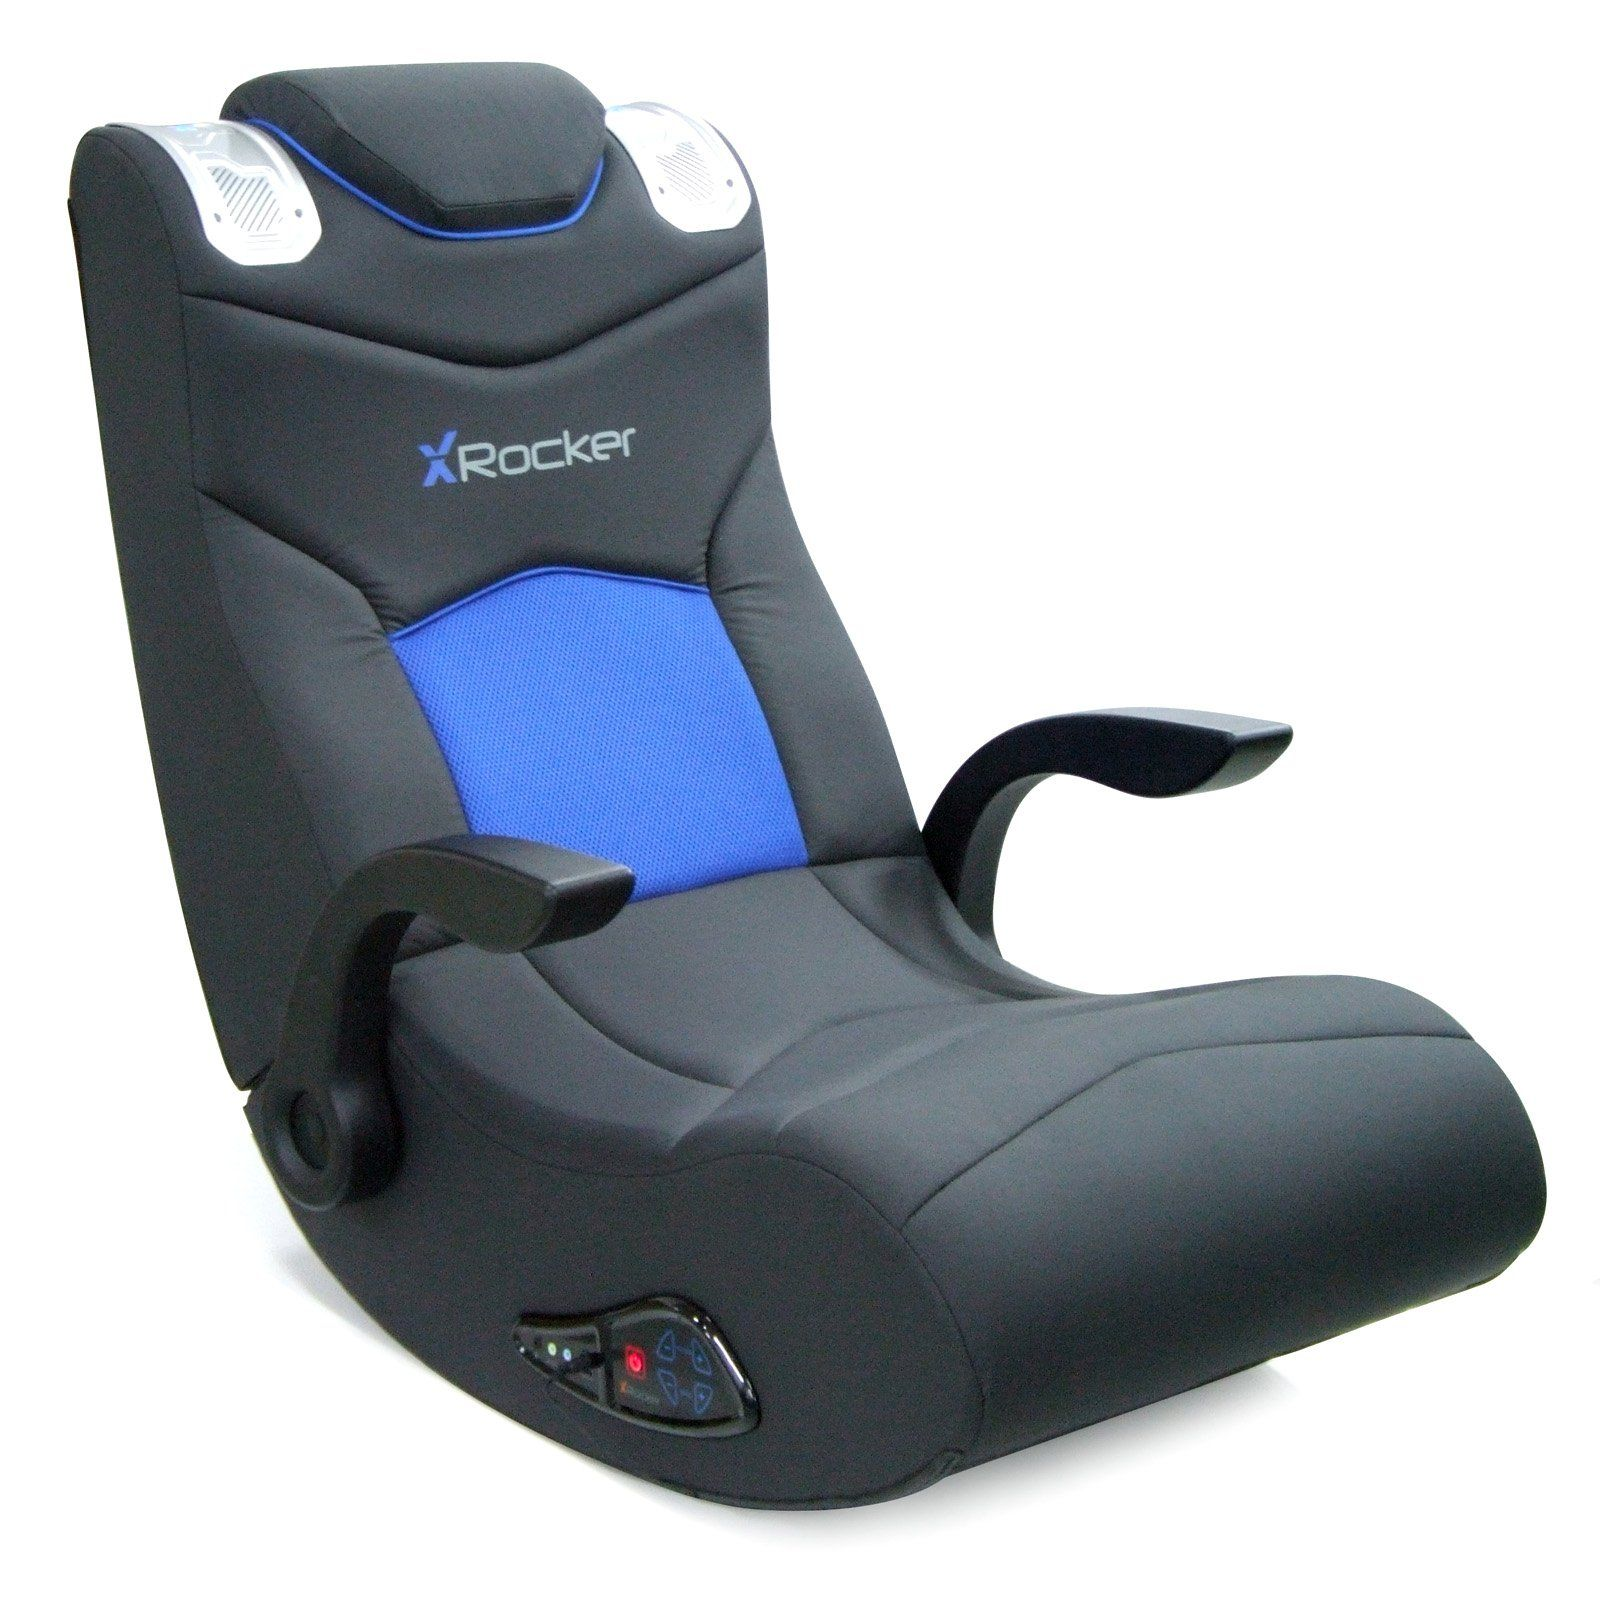 Zocker Sessel Extrem Have To Have It X Rocker Ice Video Rocker Game Chair 199 99